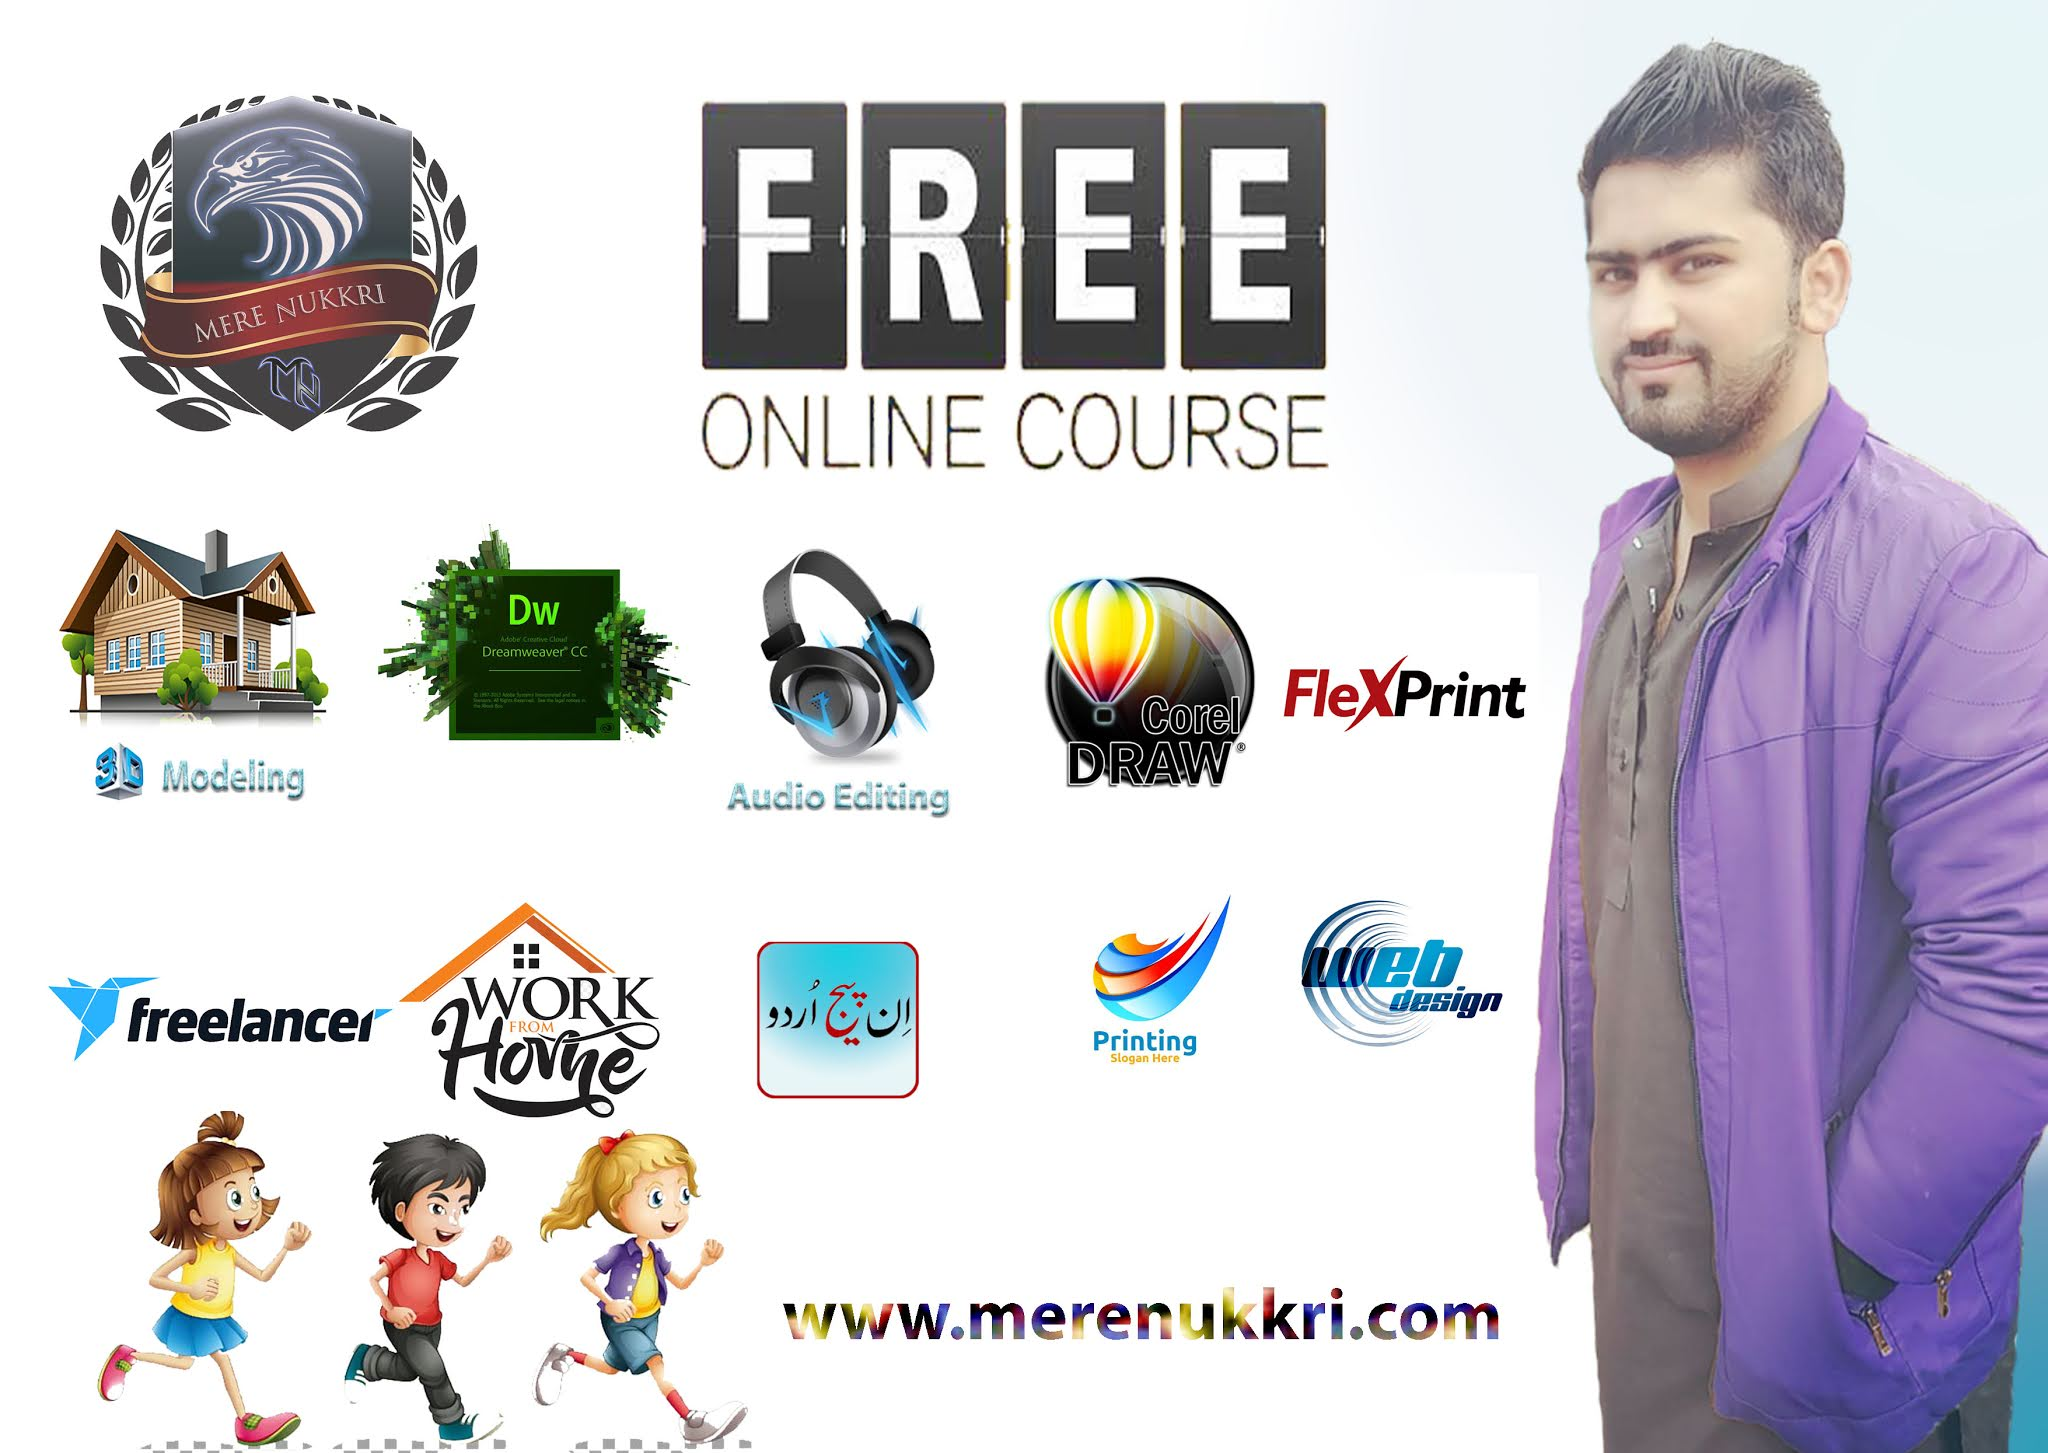 Free Online Courses With Certificates-Online Courses-www.merenukkri.com